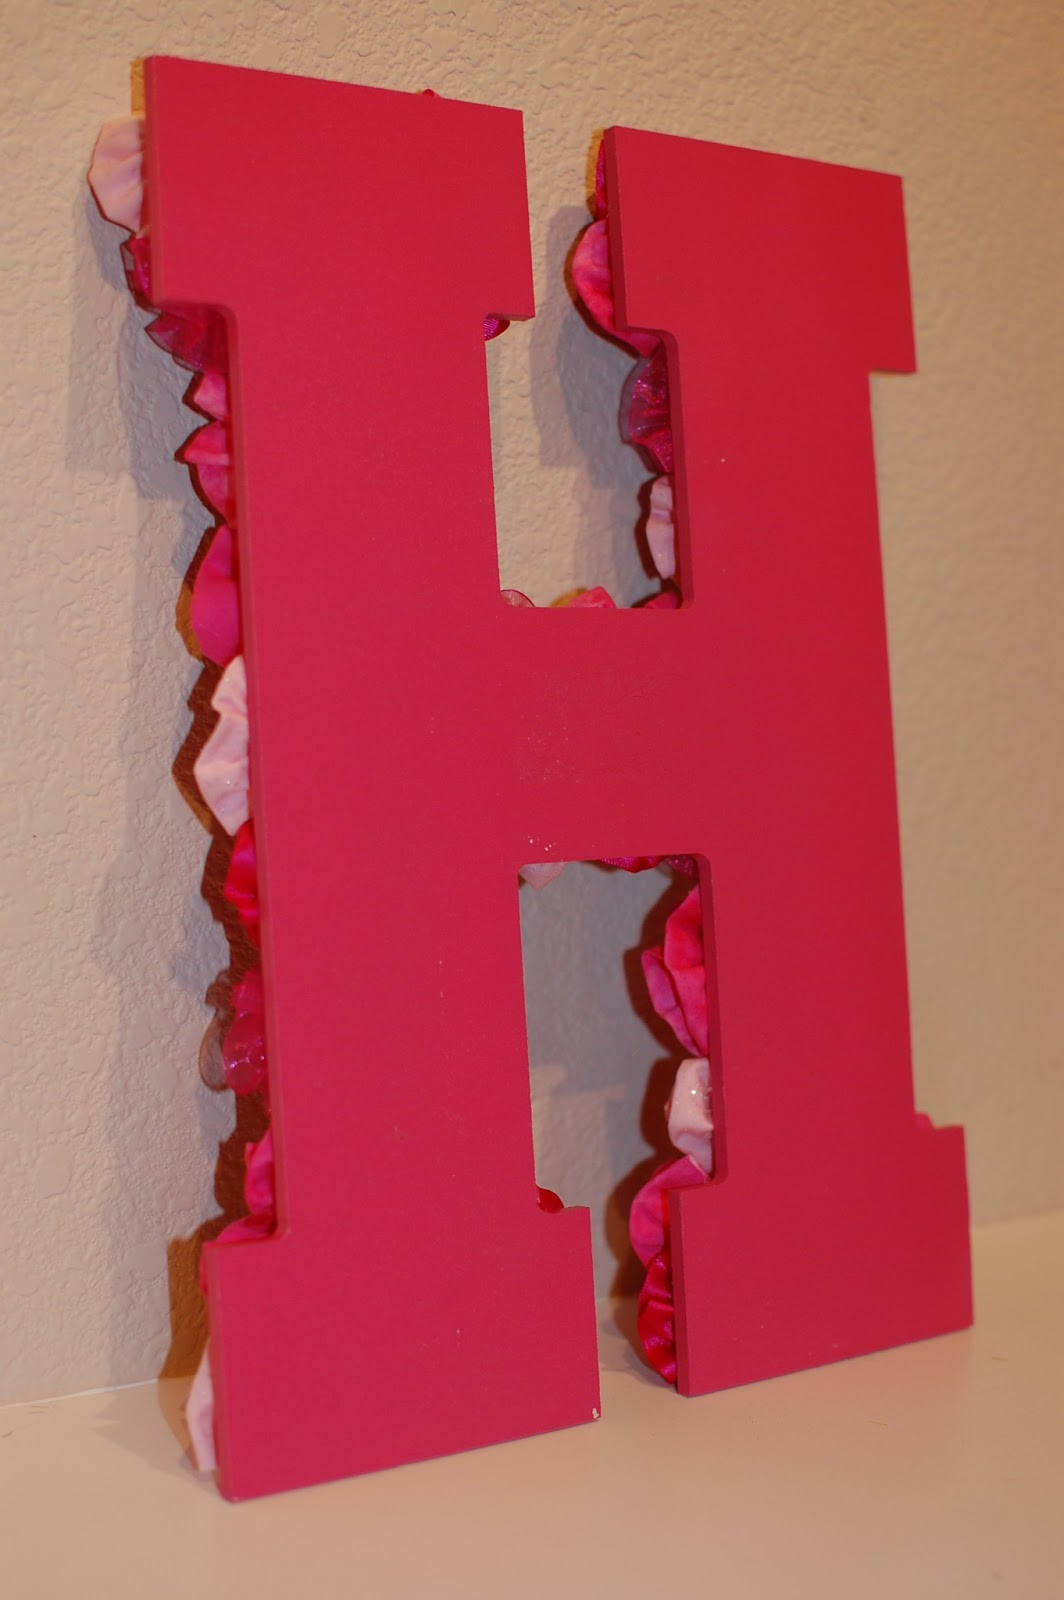 Pinkie for Pink: DIY Letter Wall Decor